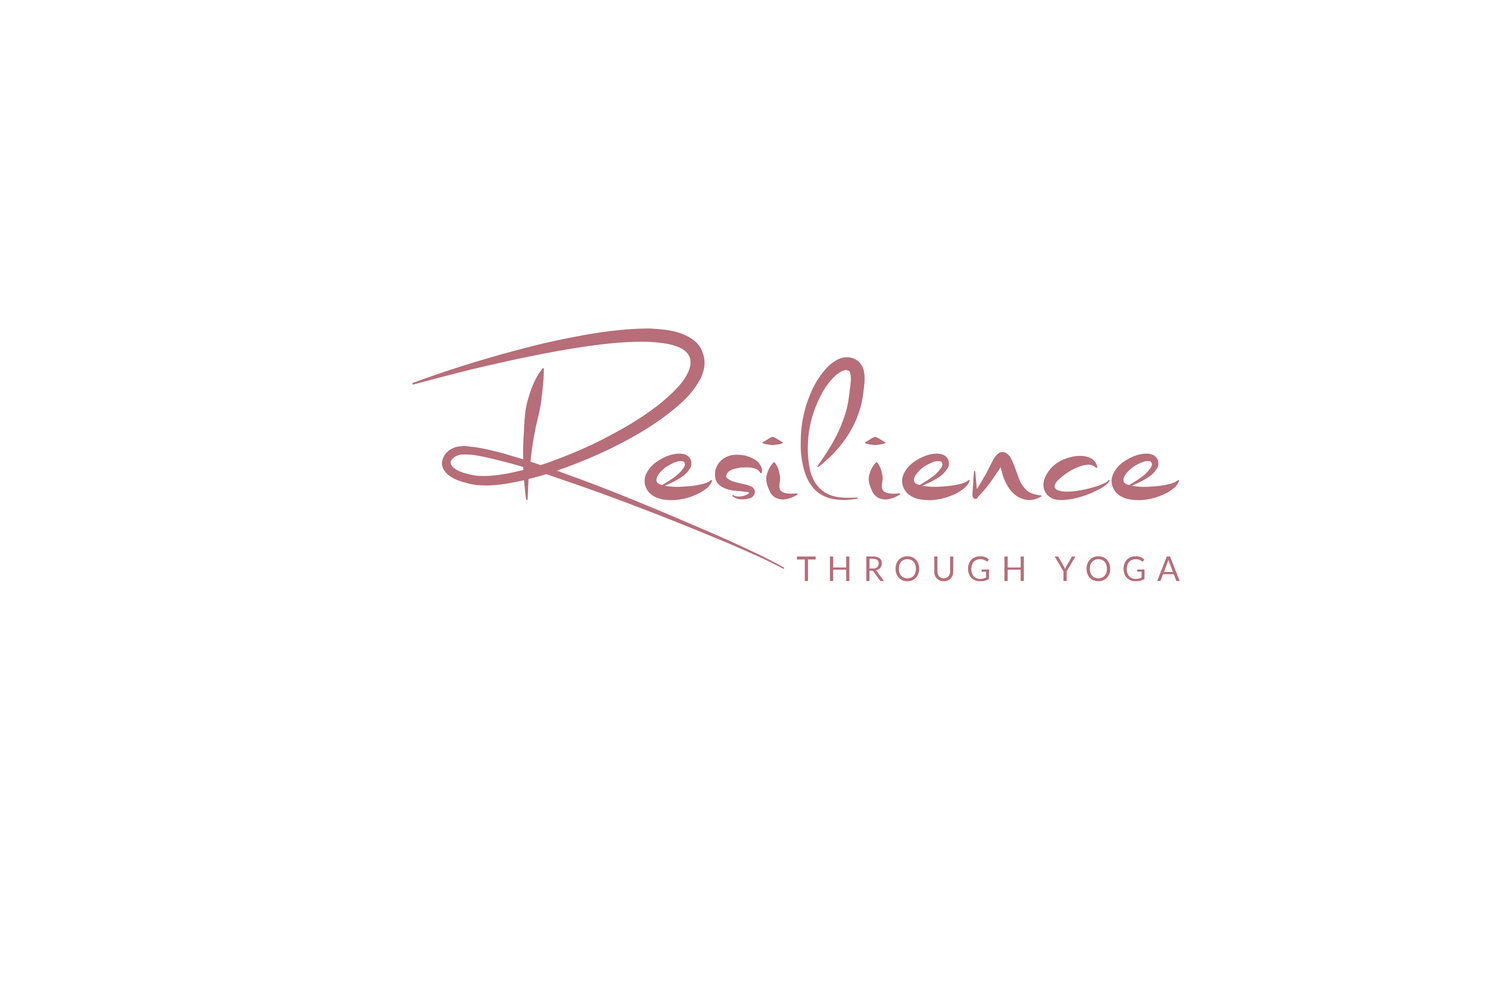 #resiliencethroughyoga